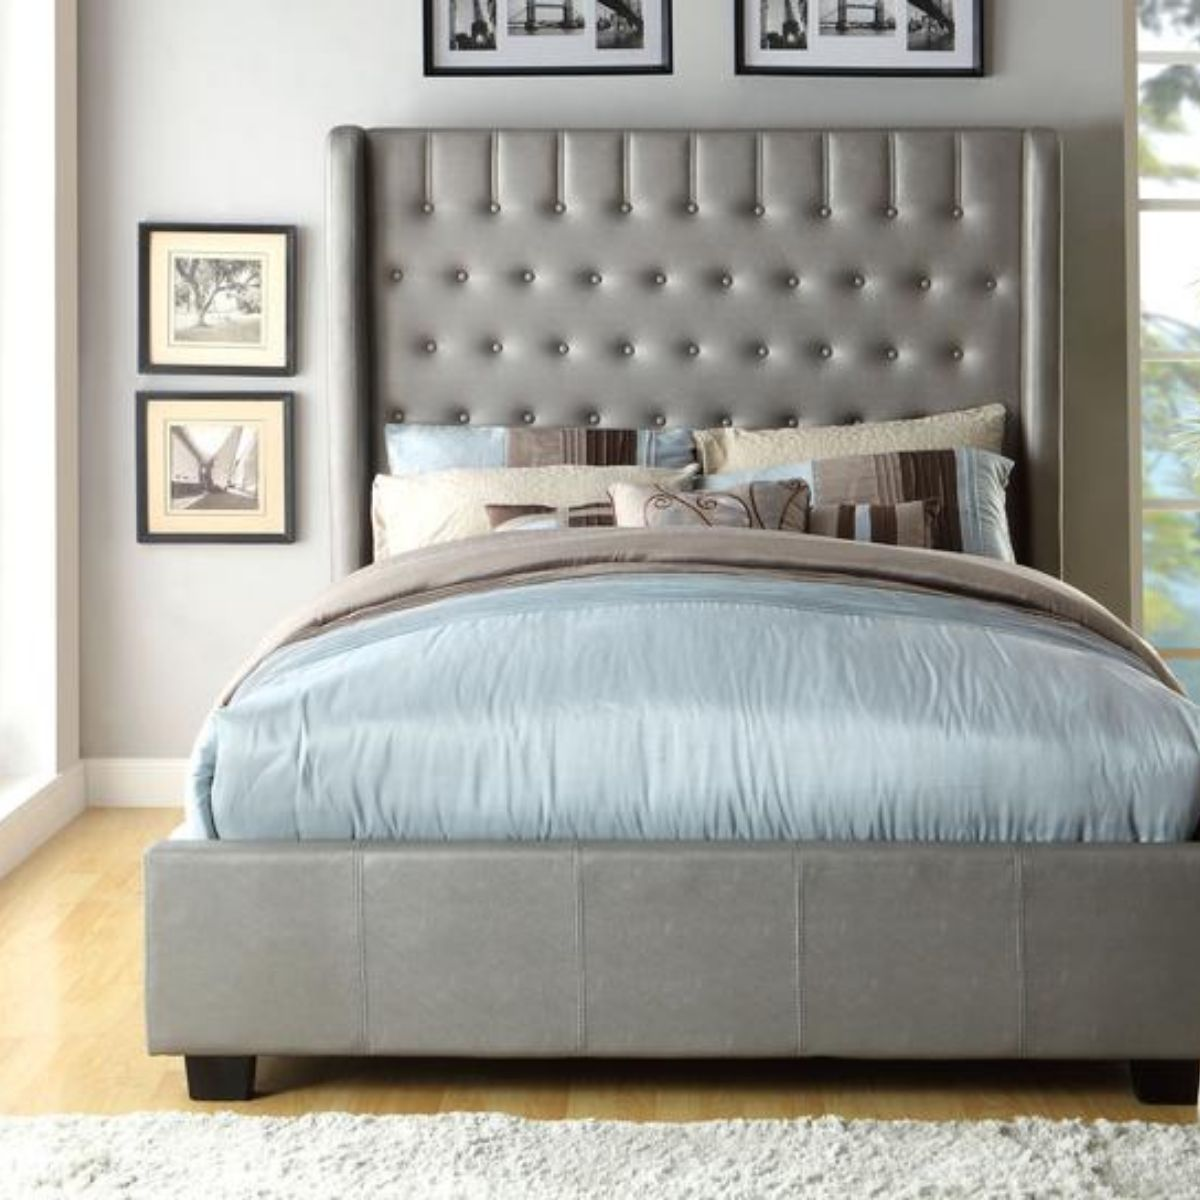 Beds - Grey Platform Bed - Bedroom Furniture - Wall2Wall Furnishings